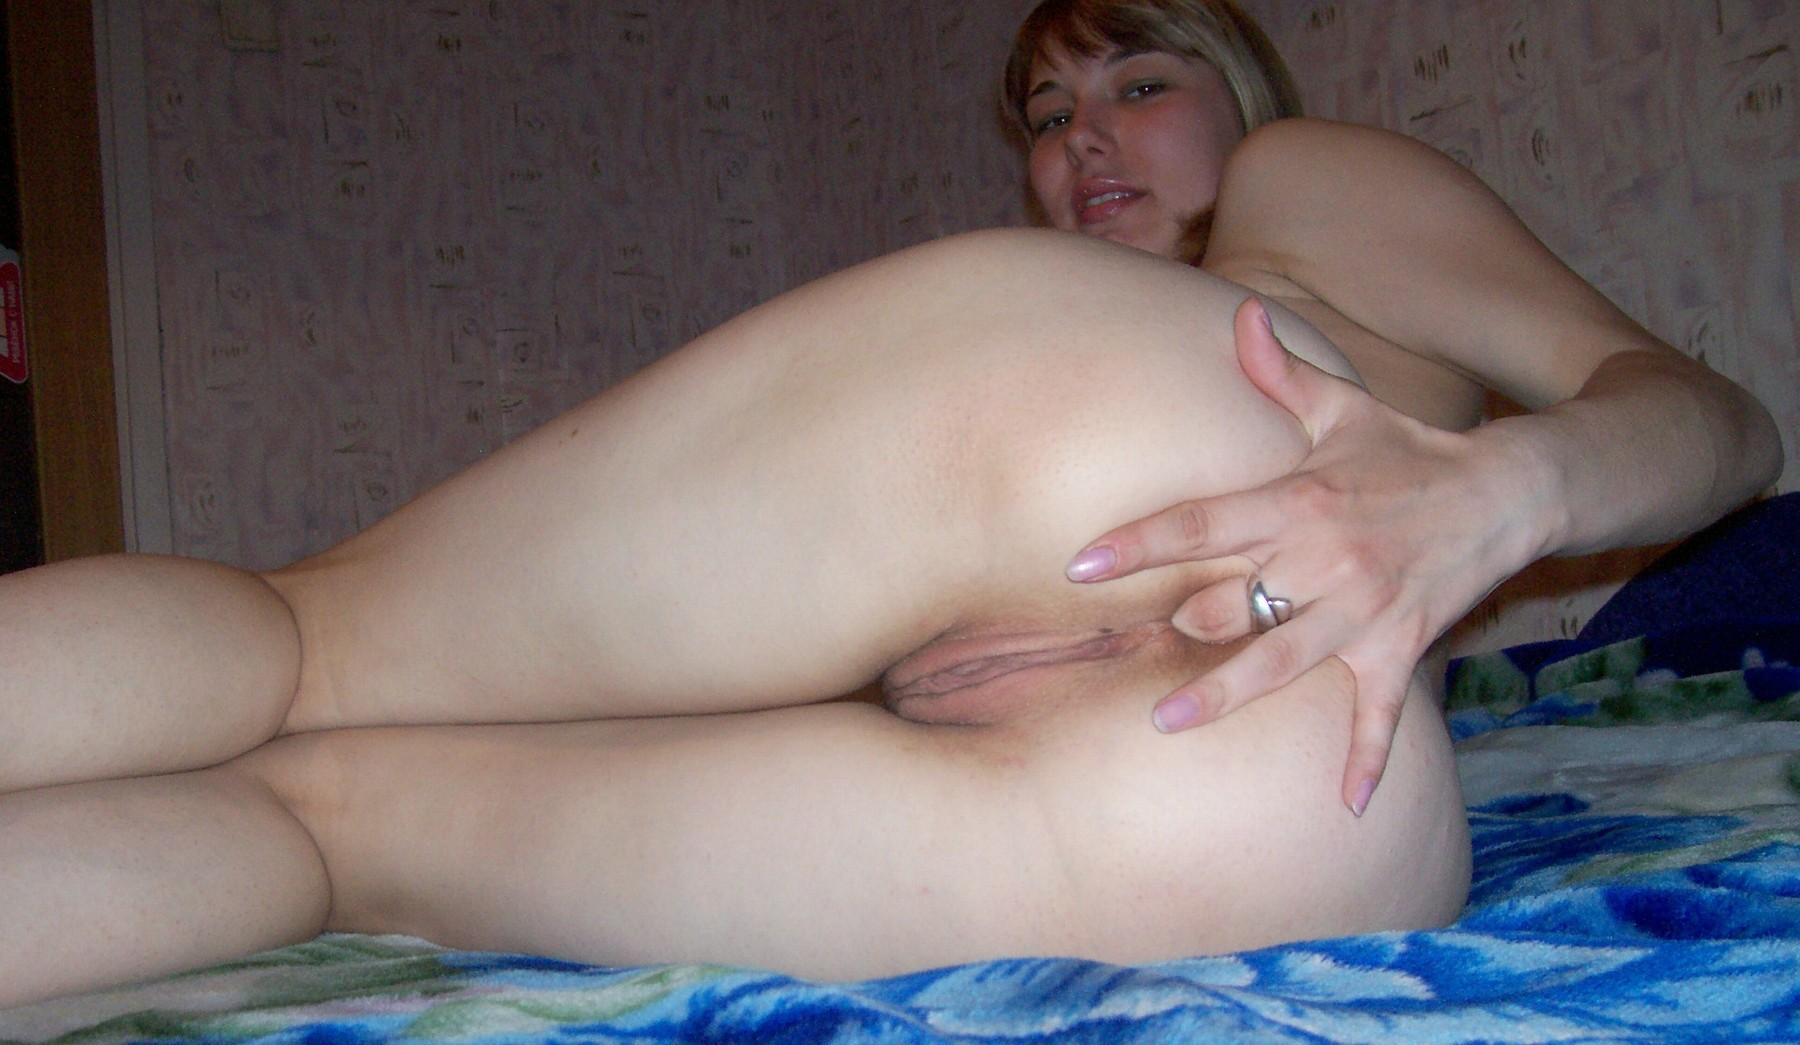 Wife fingers ass, mom and son sex vidoes